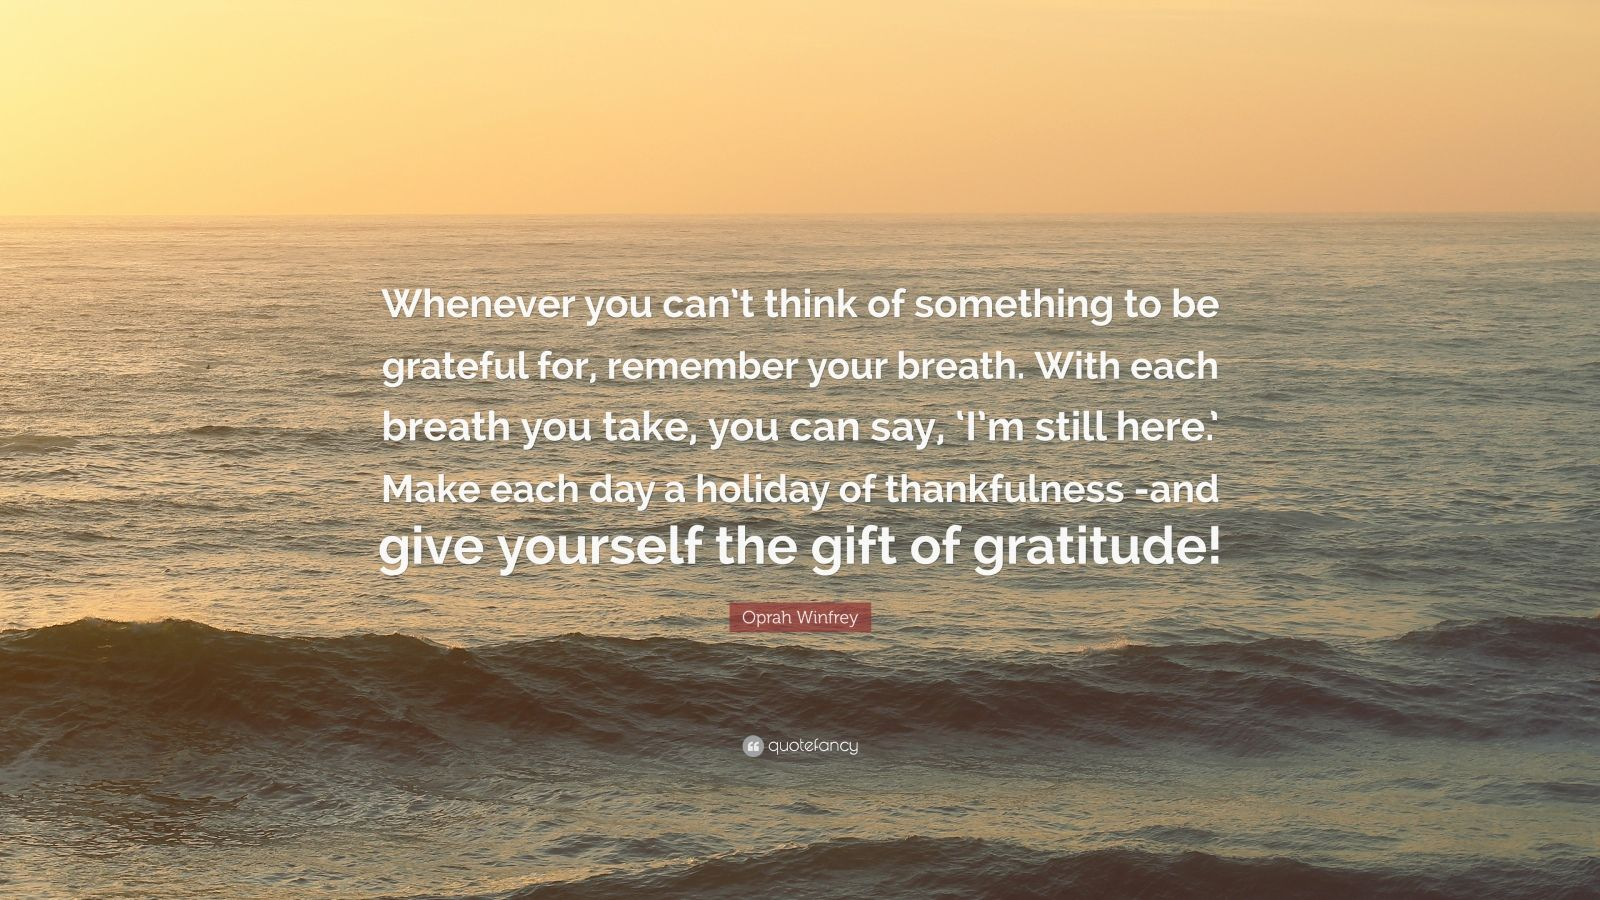 """Oprah Winfrey Quote: """"Whenever you can't think of something to be grateful for, remember your breath. With each breath you take, you can say, 'I'm still here.' Make each day a holiday of thankfulness -and give yourself the gift of gratitude!"""""""